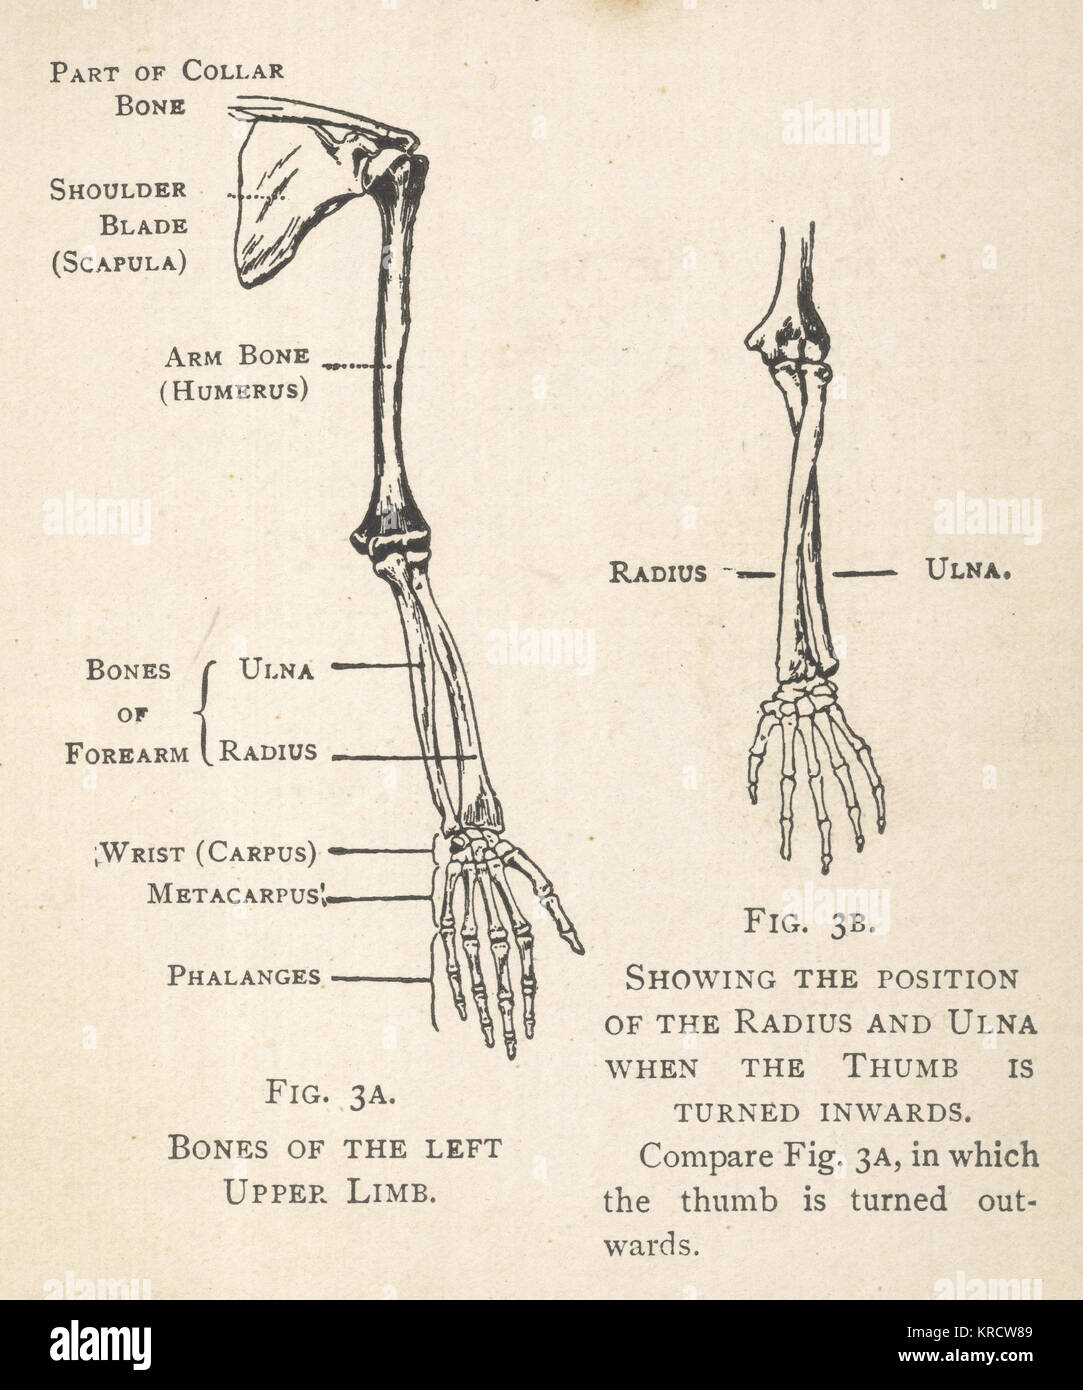 forearm bones diagram laptop charger wiring scapula bone stock photos and images alamy